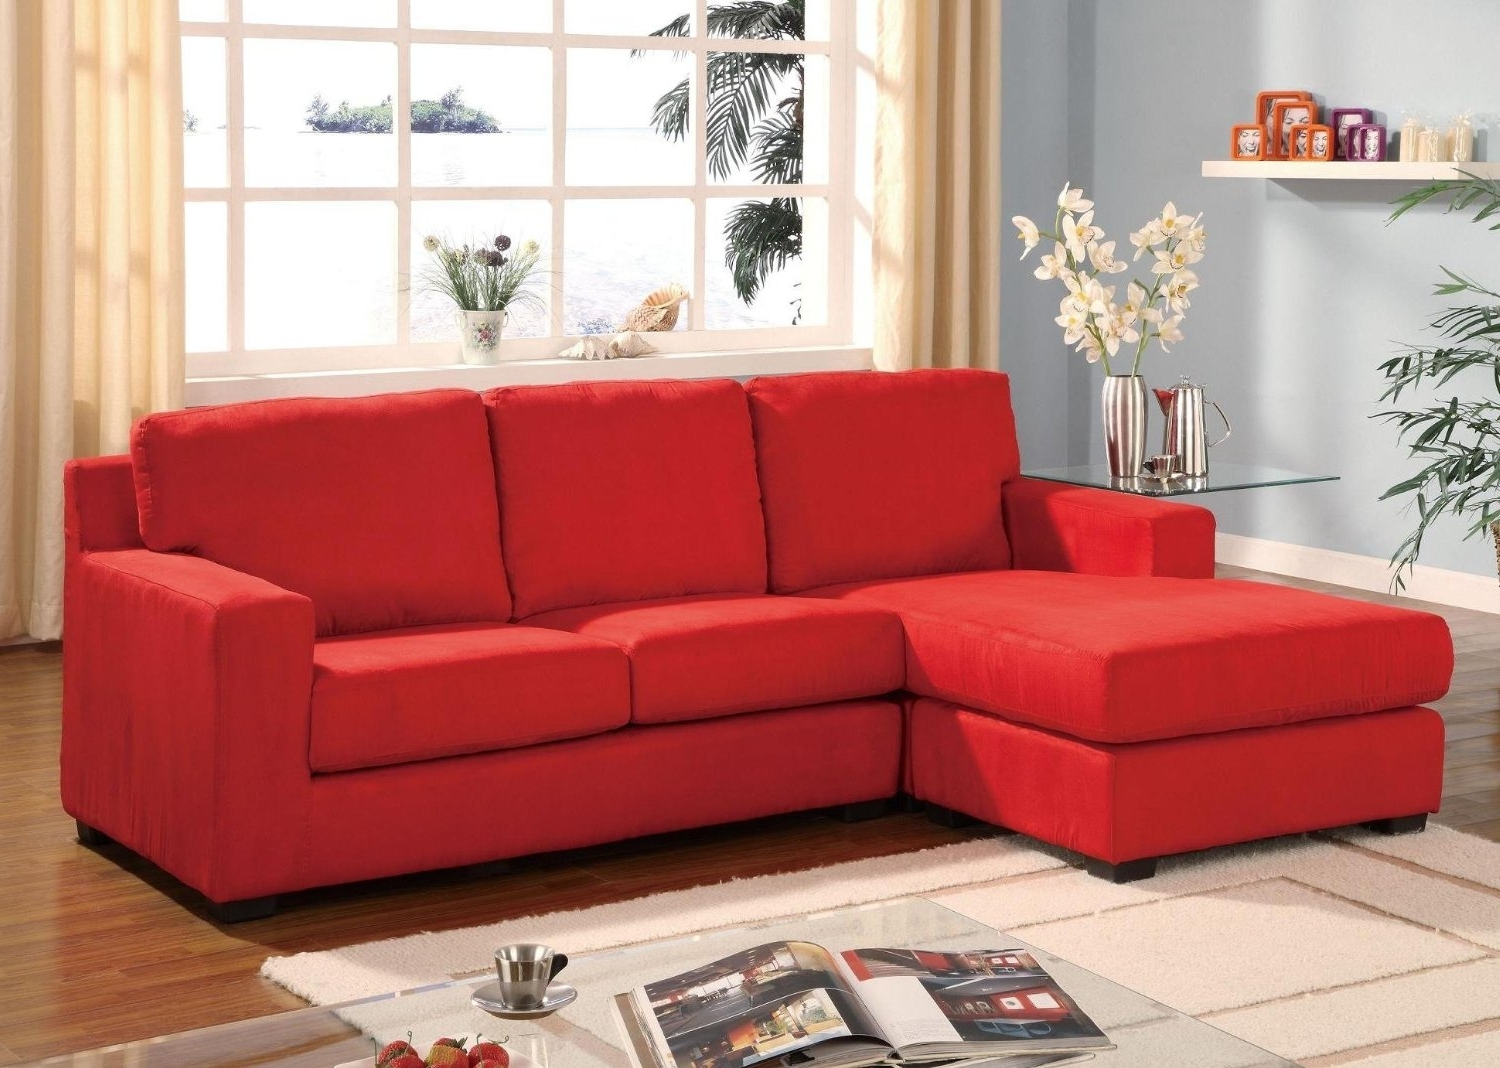 Fashionable Small Red Sectional Sofa – Home And Textiles Within Small Red Leather Sectional Sofas (View 11 of 15)